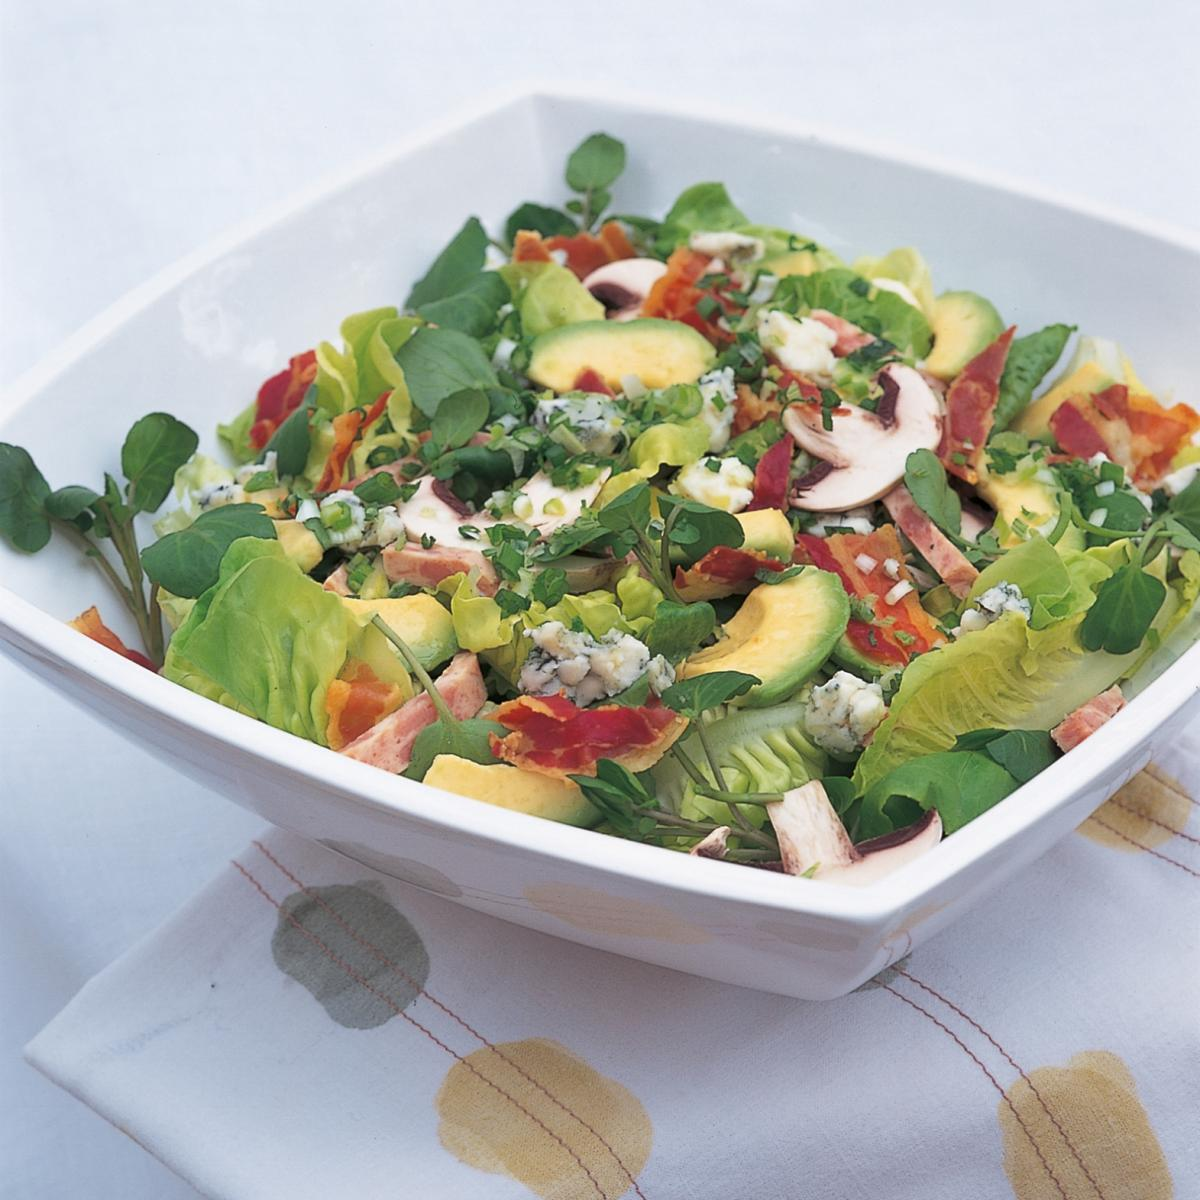 A picture of Delia's American Chef's Salad recipe